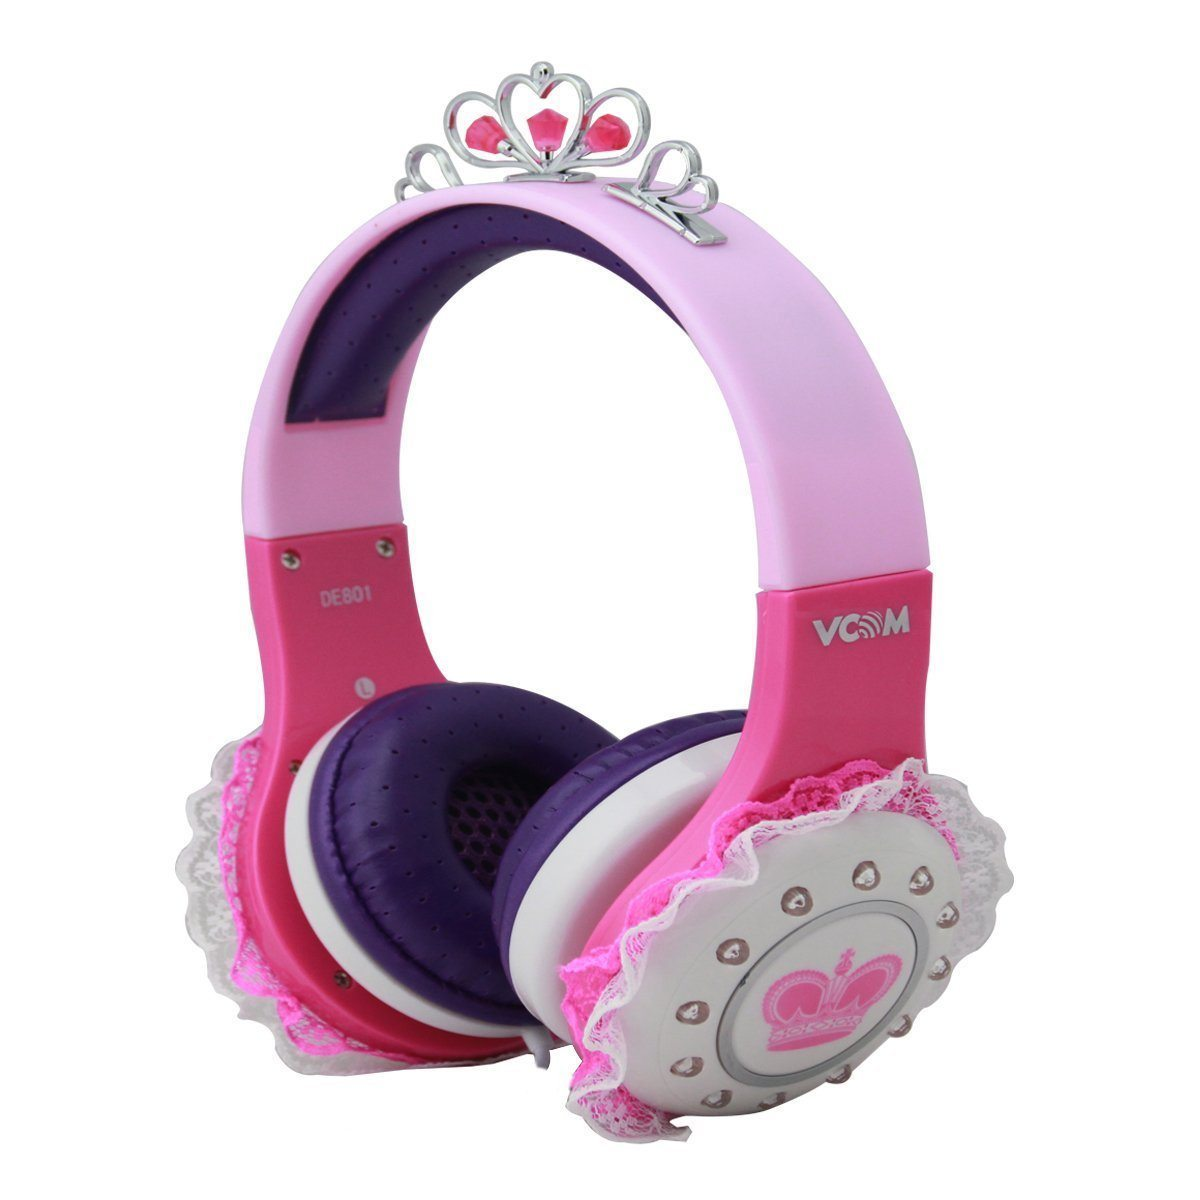 Children Headphones Princess series - DE801